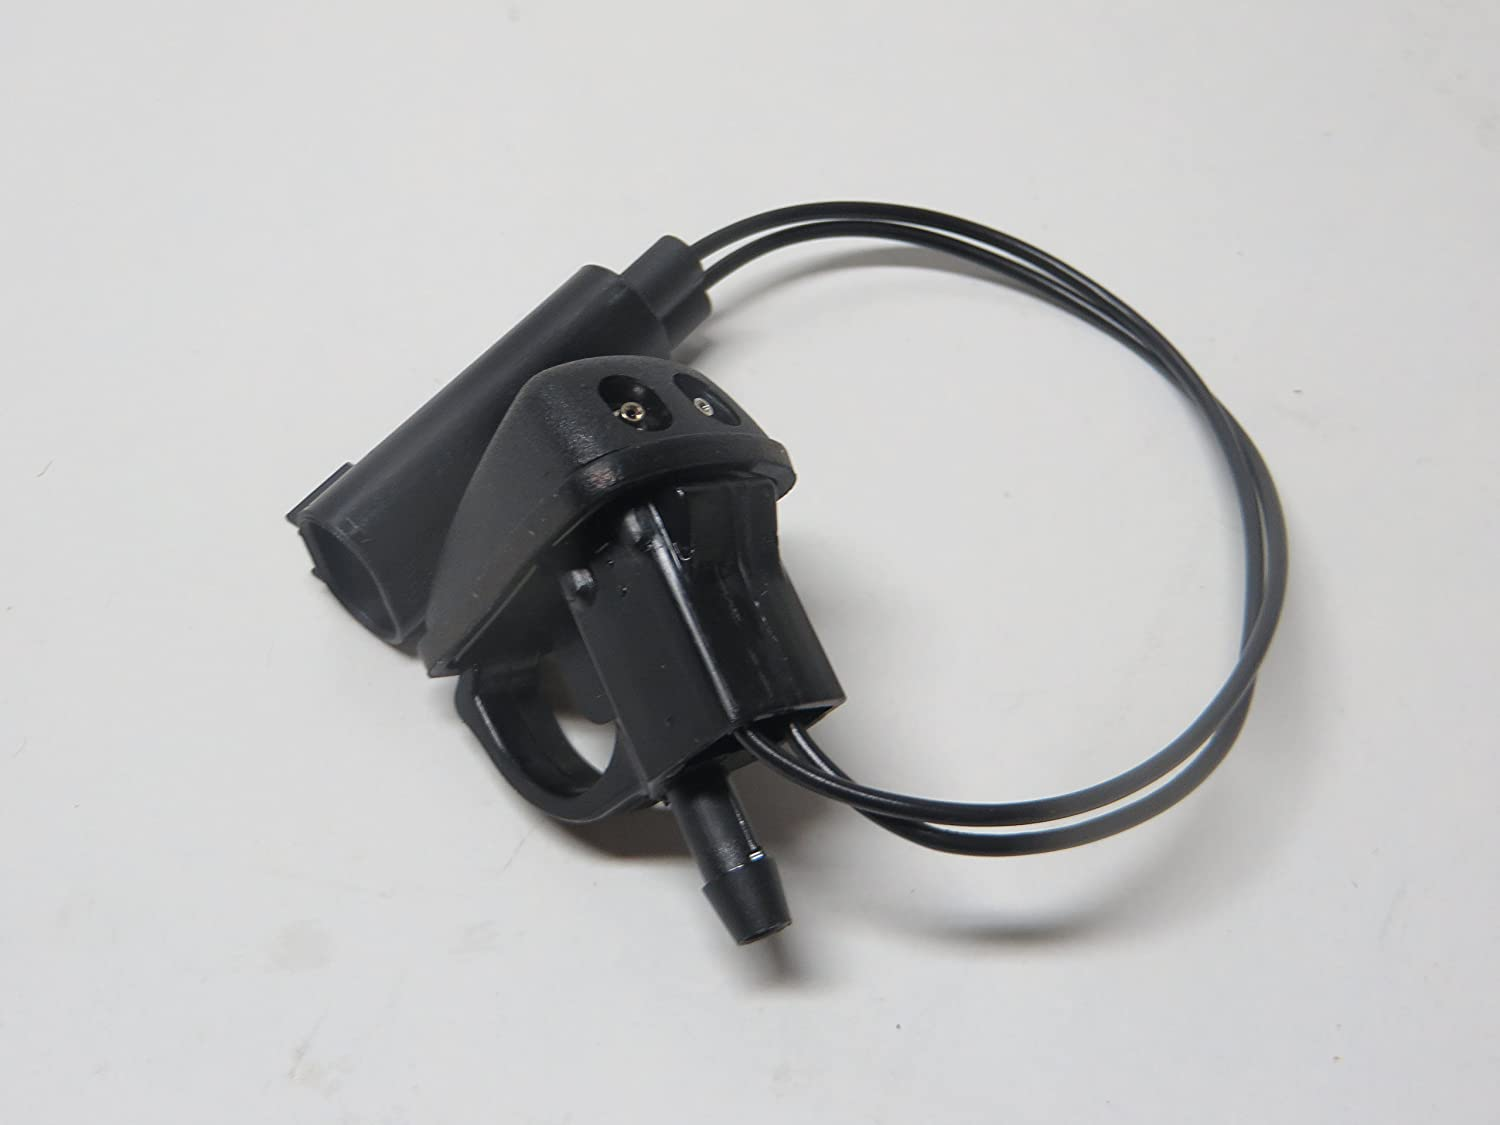 Land Rover New Genuine Windscreen Left Heated Washer Jet LR048710